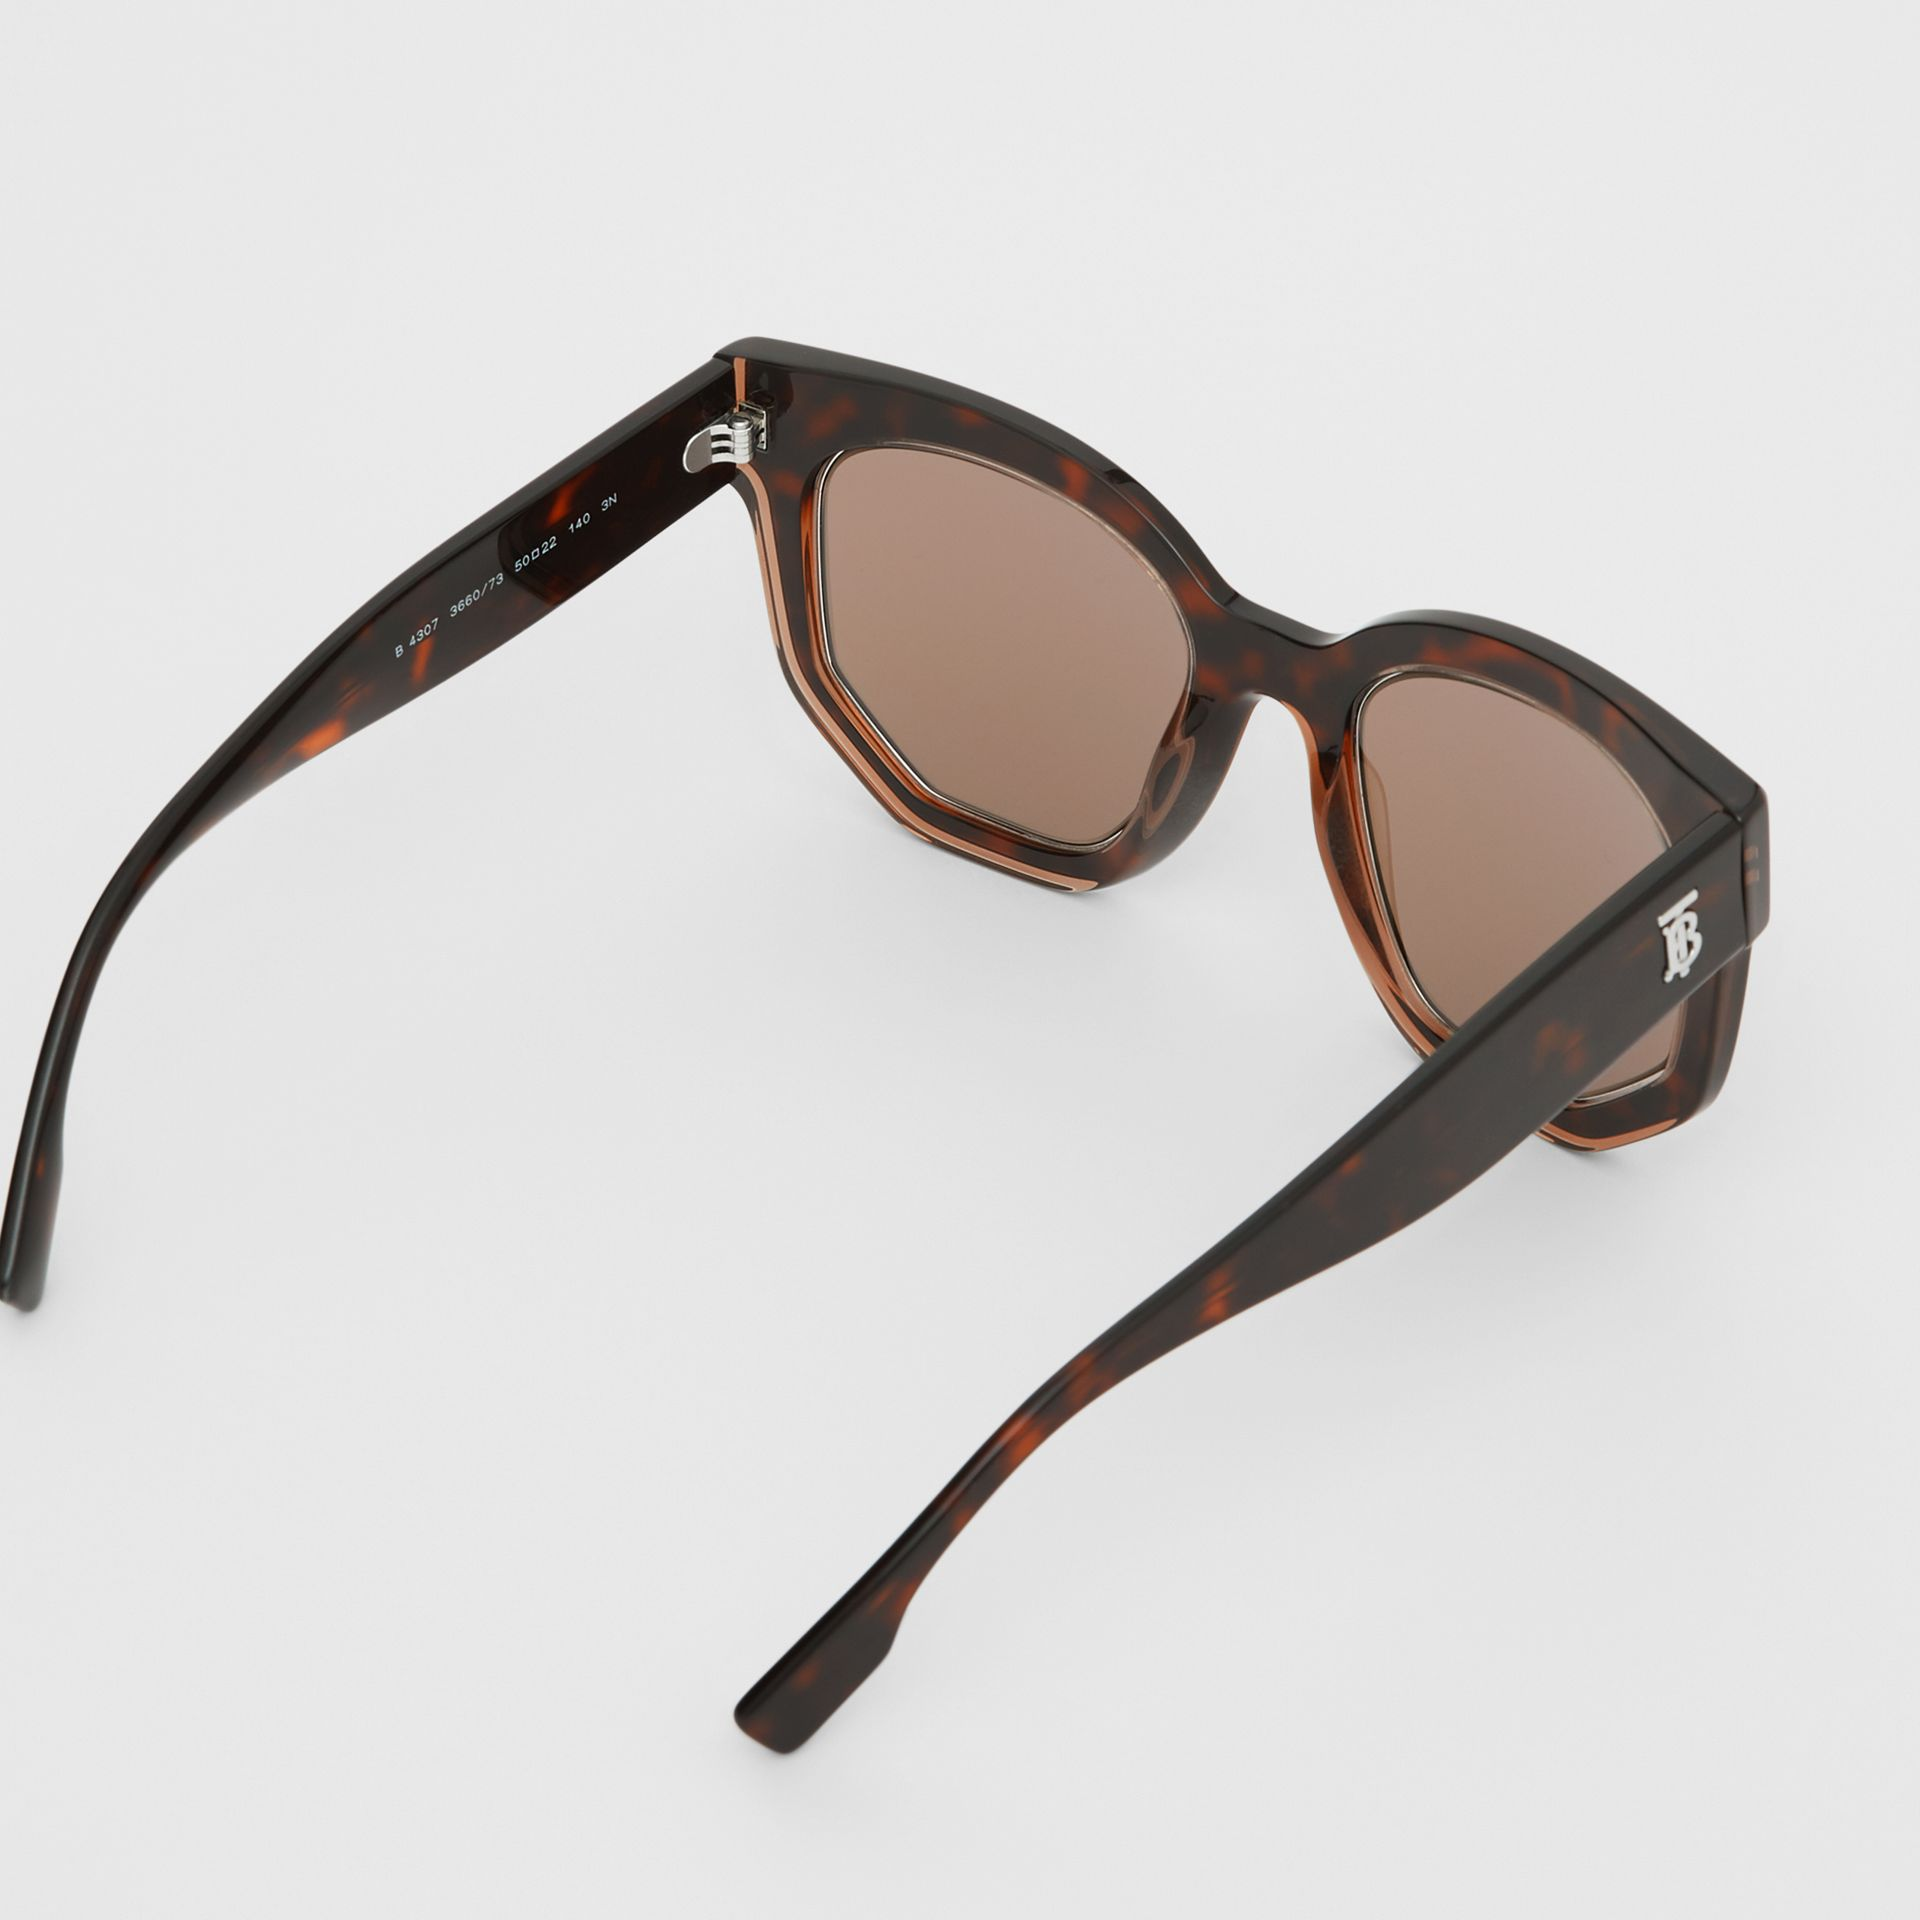 Geometric Frame Sunglasses in Tortoiseshell - Women | Burberry - gallery image 4